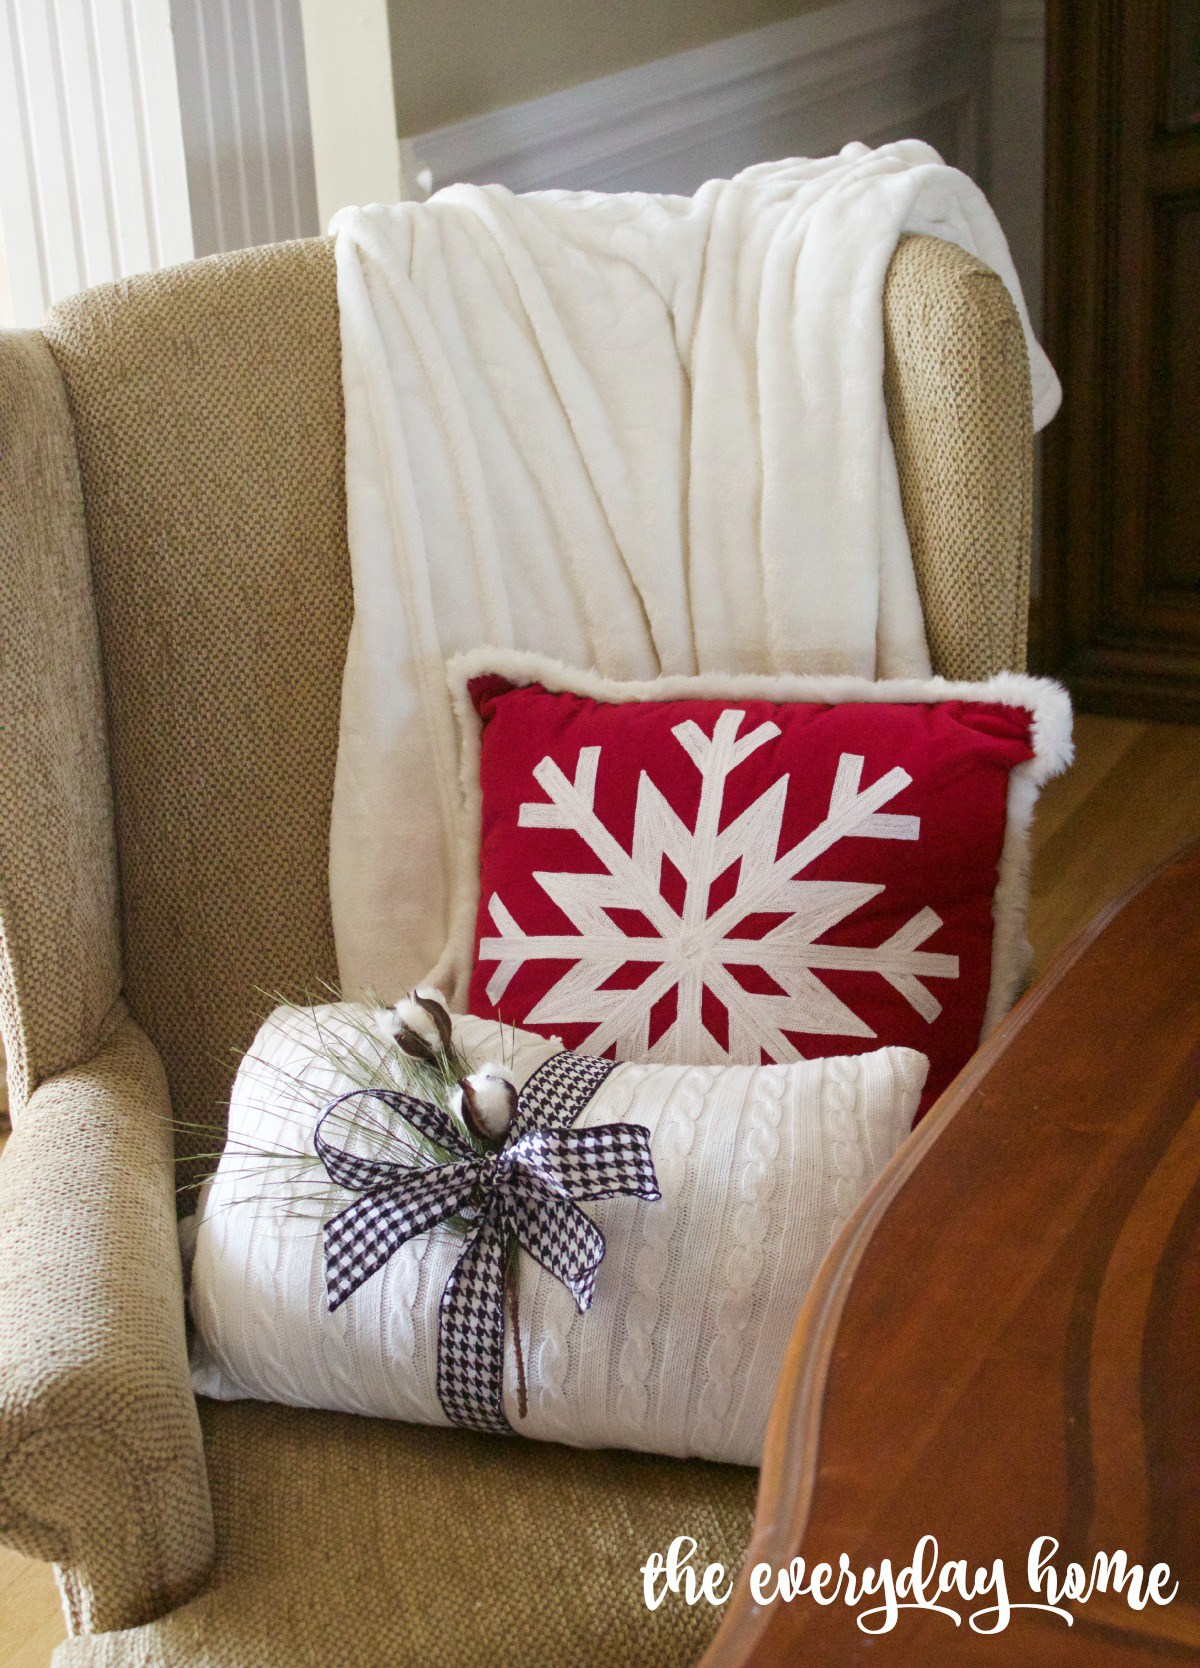 A Christmas pillow you can make in minutes (for under $5!)